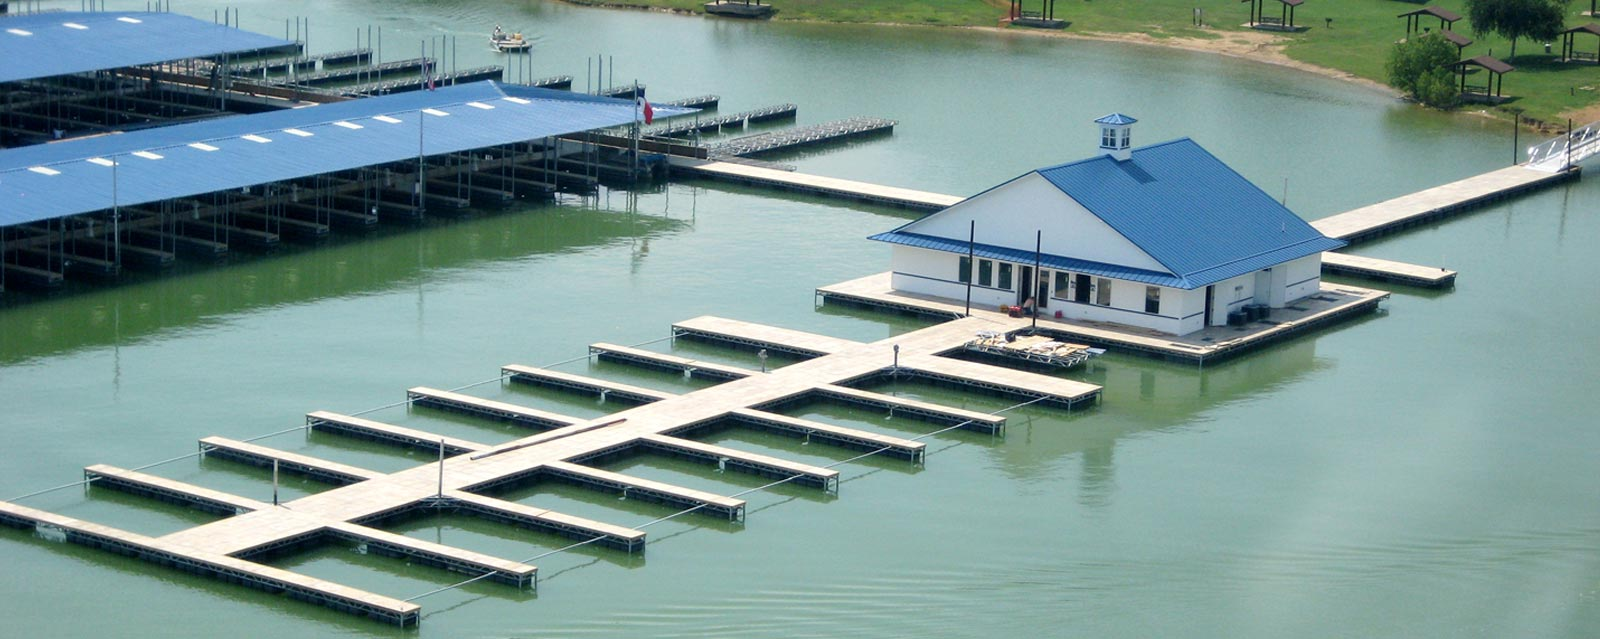 Floating Dock Systems